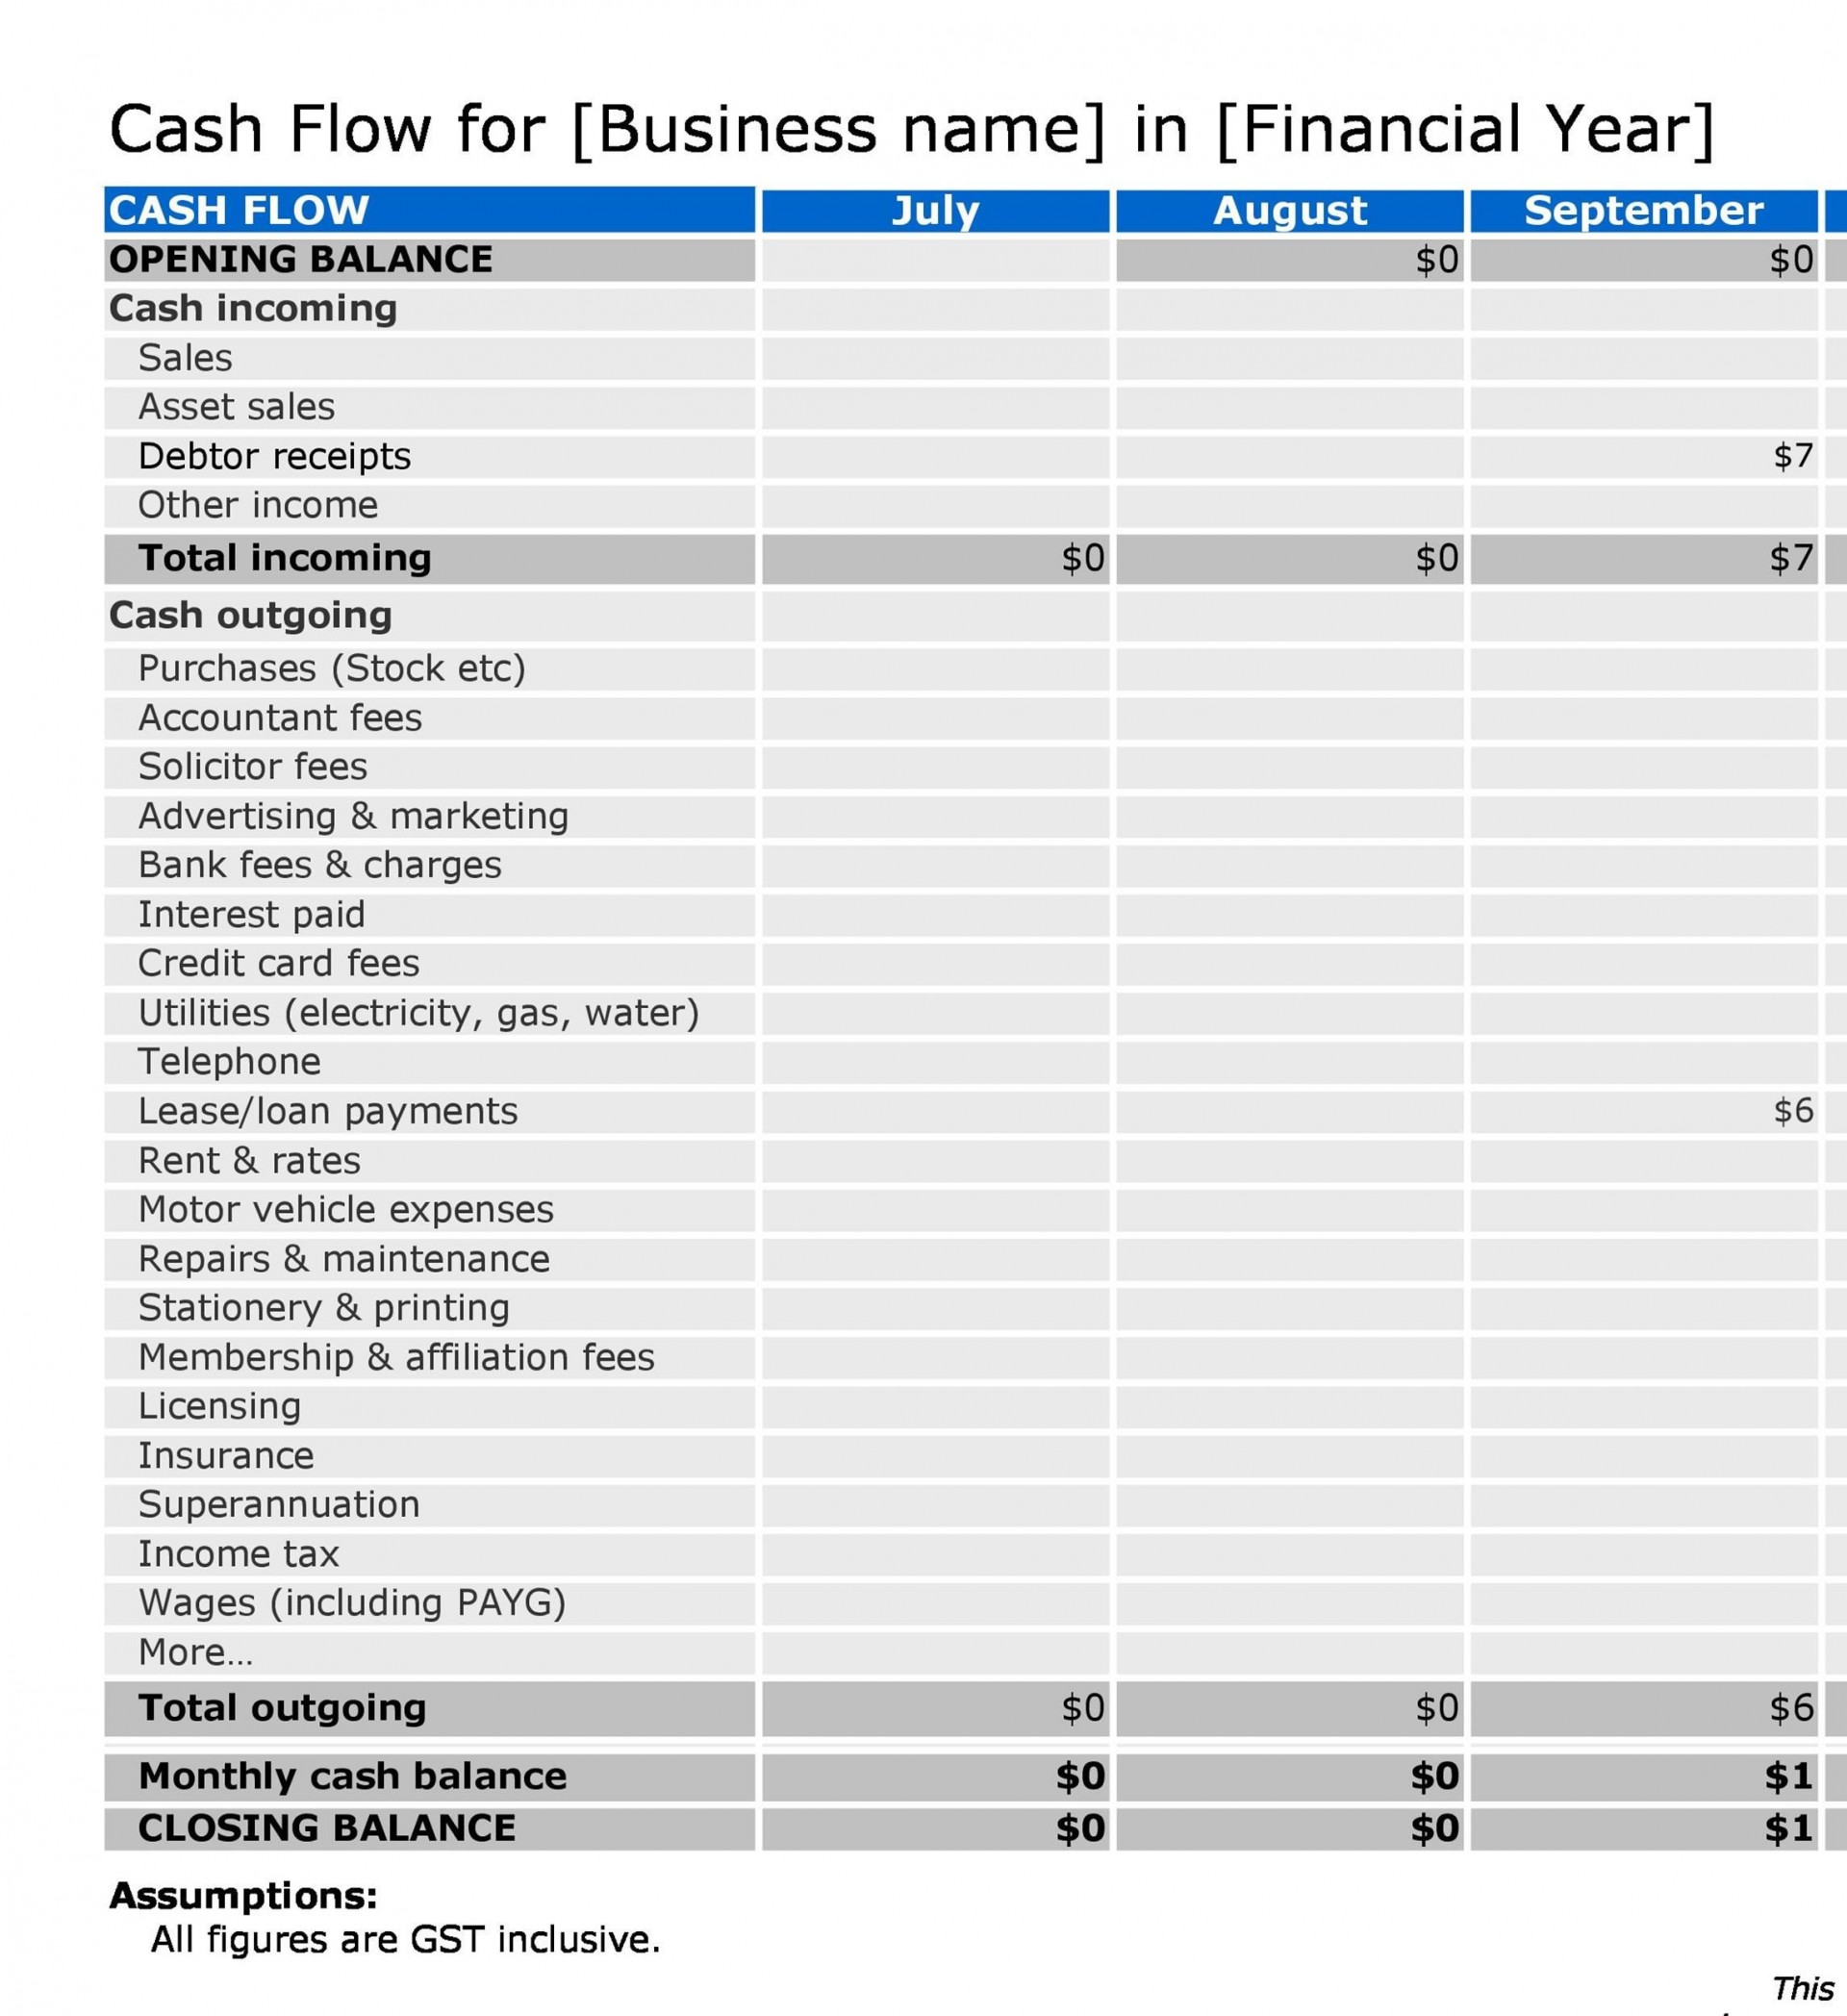 004 Exceptional Statement Of Cash Flow Template Ifr High Resolution  Ifrs Excel1920